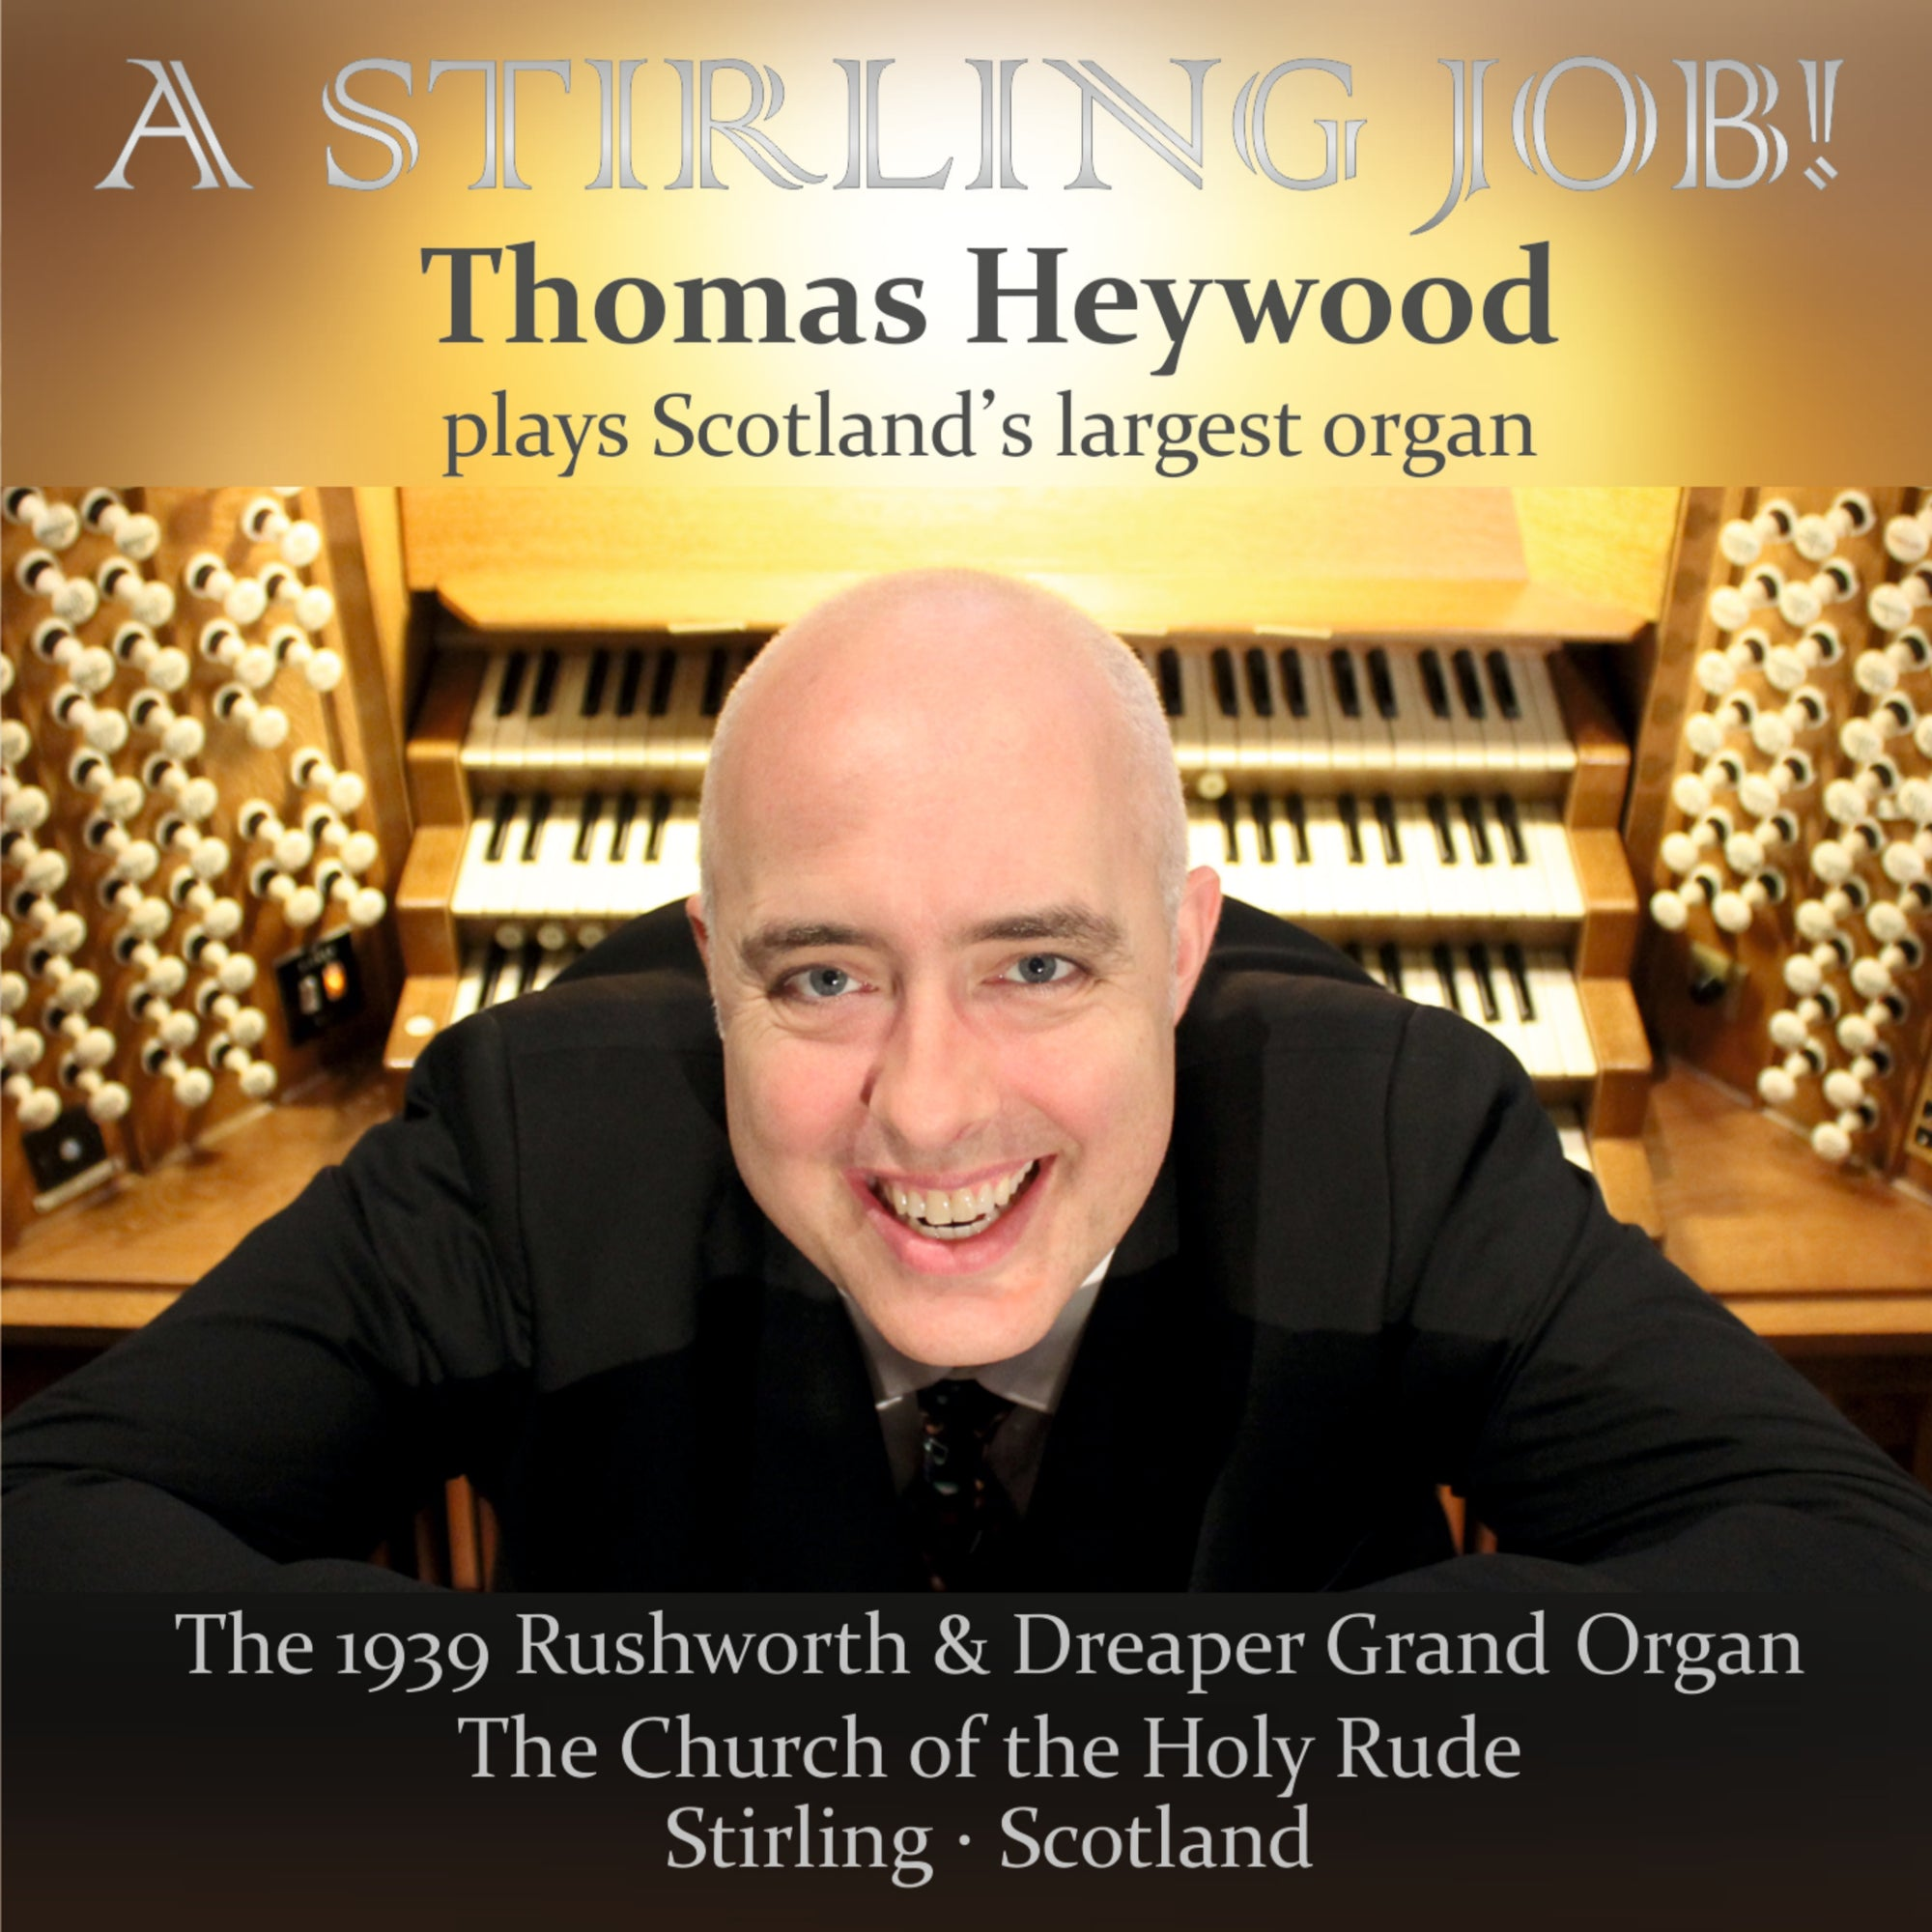 A Stirling Job! (CD) | Thomas Heywood | Concert Organ International